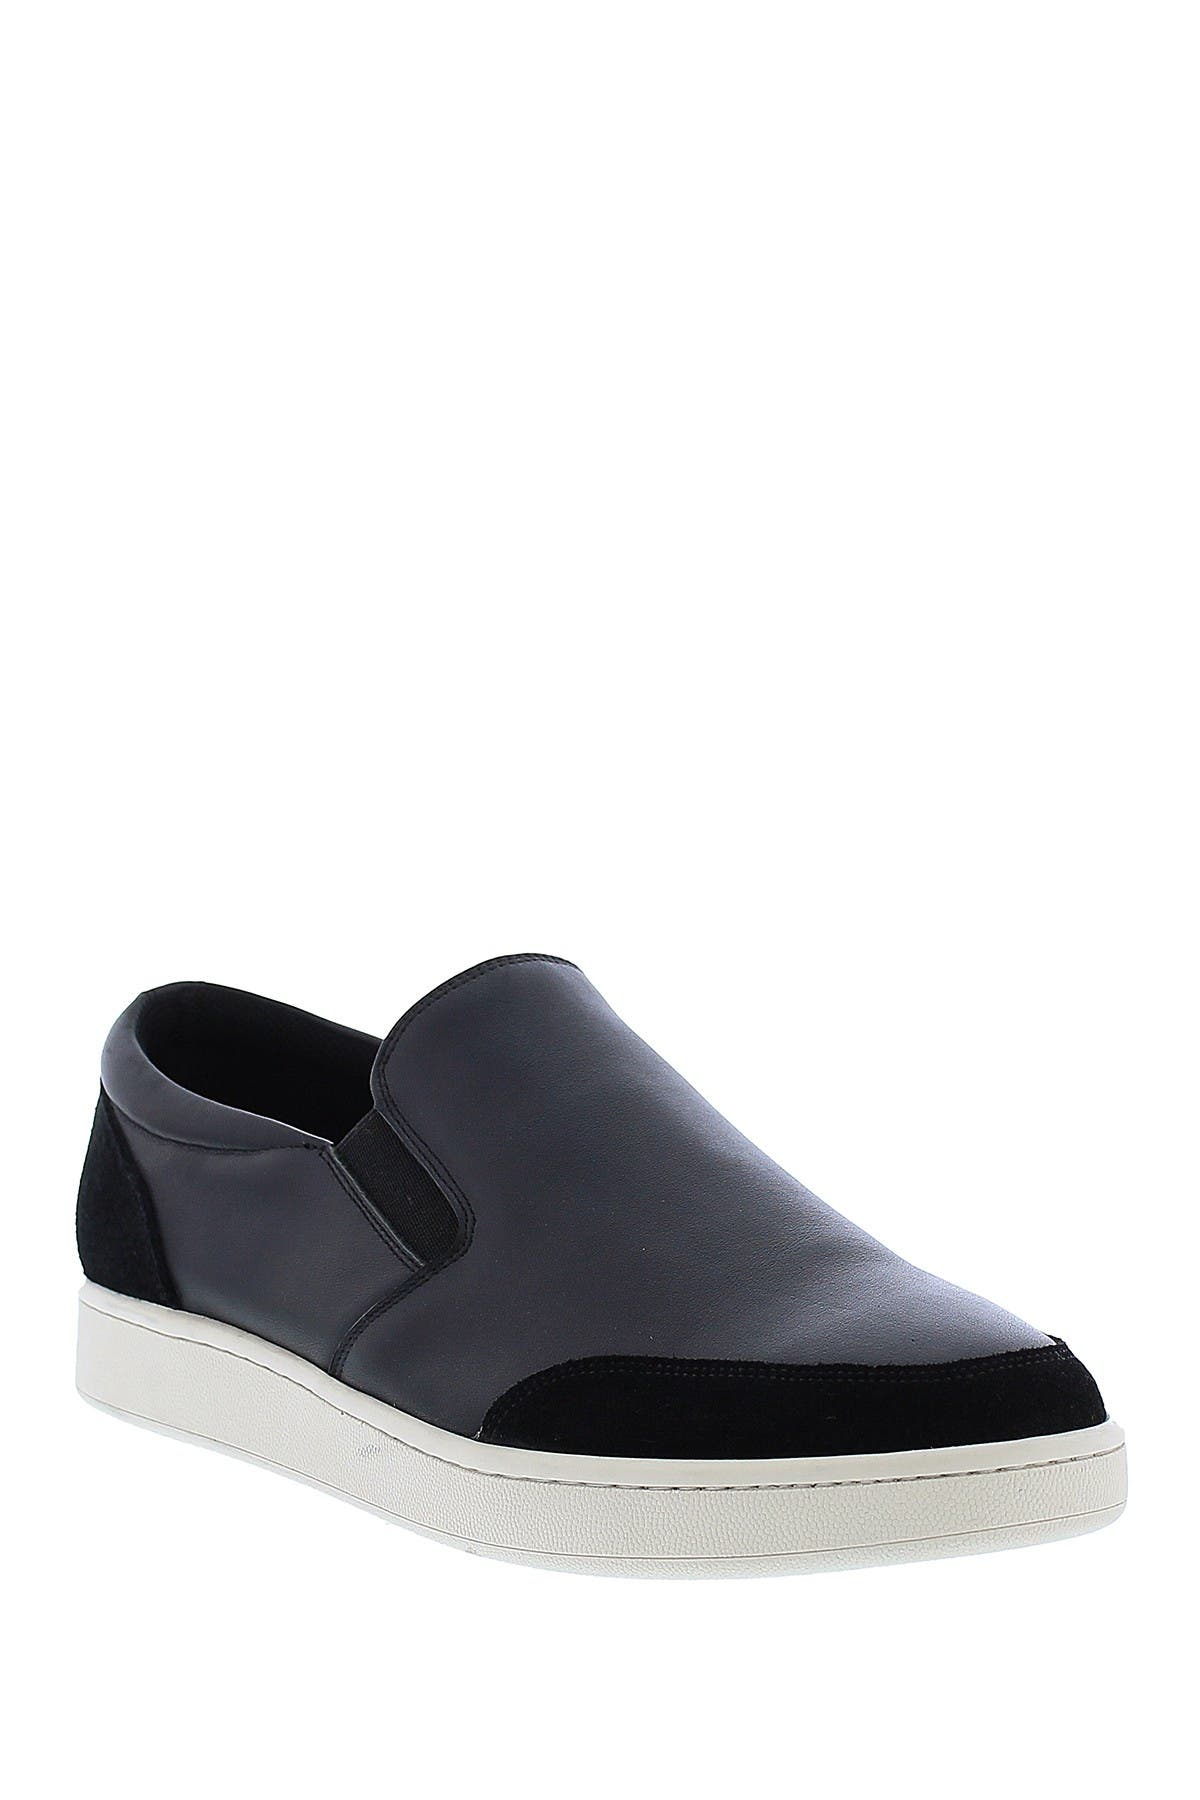 English Laundry High Sneaker In Black